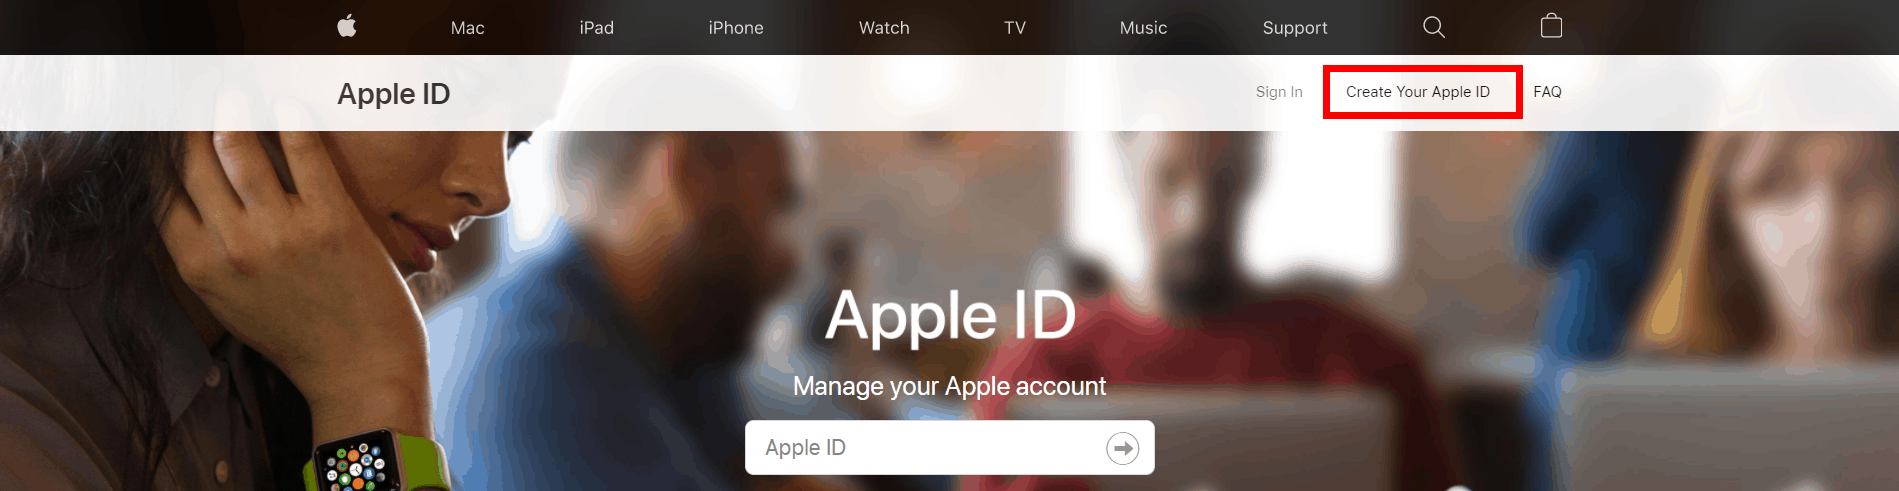 Create your Apple ID - Apple ID website